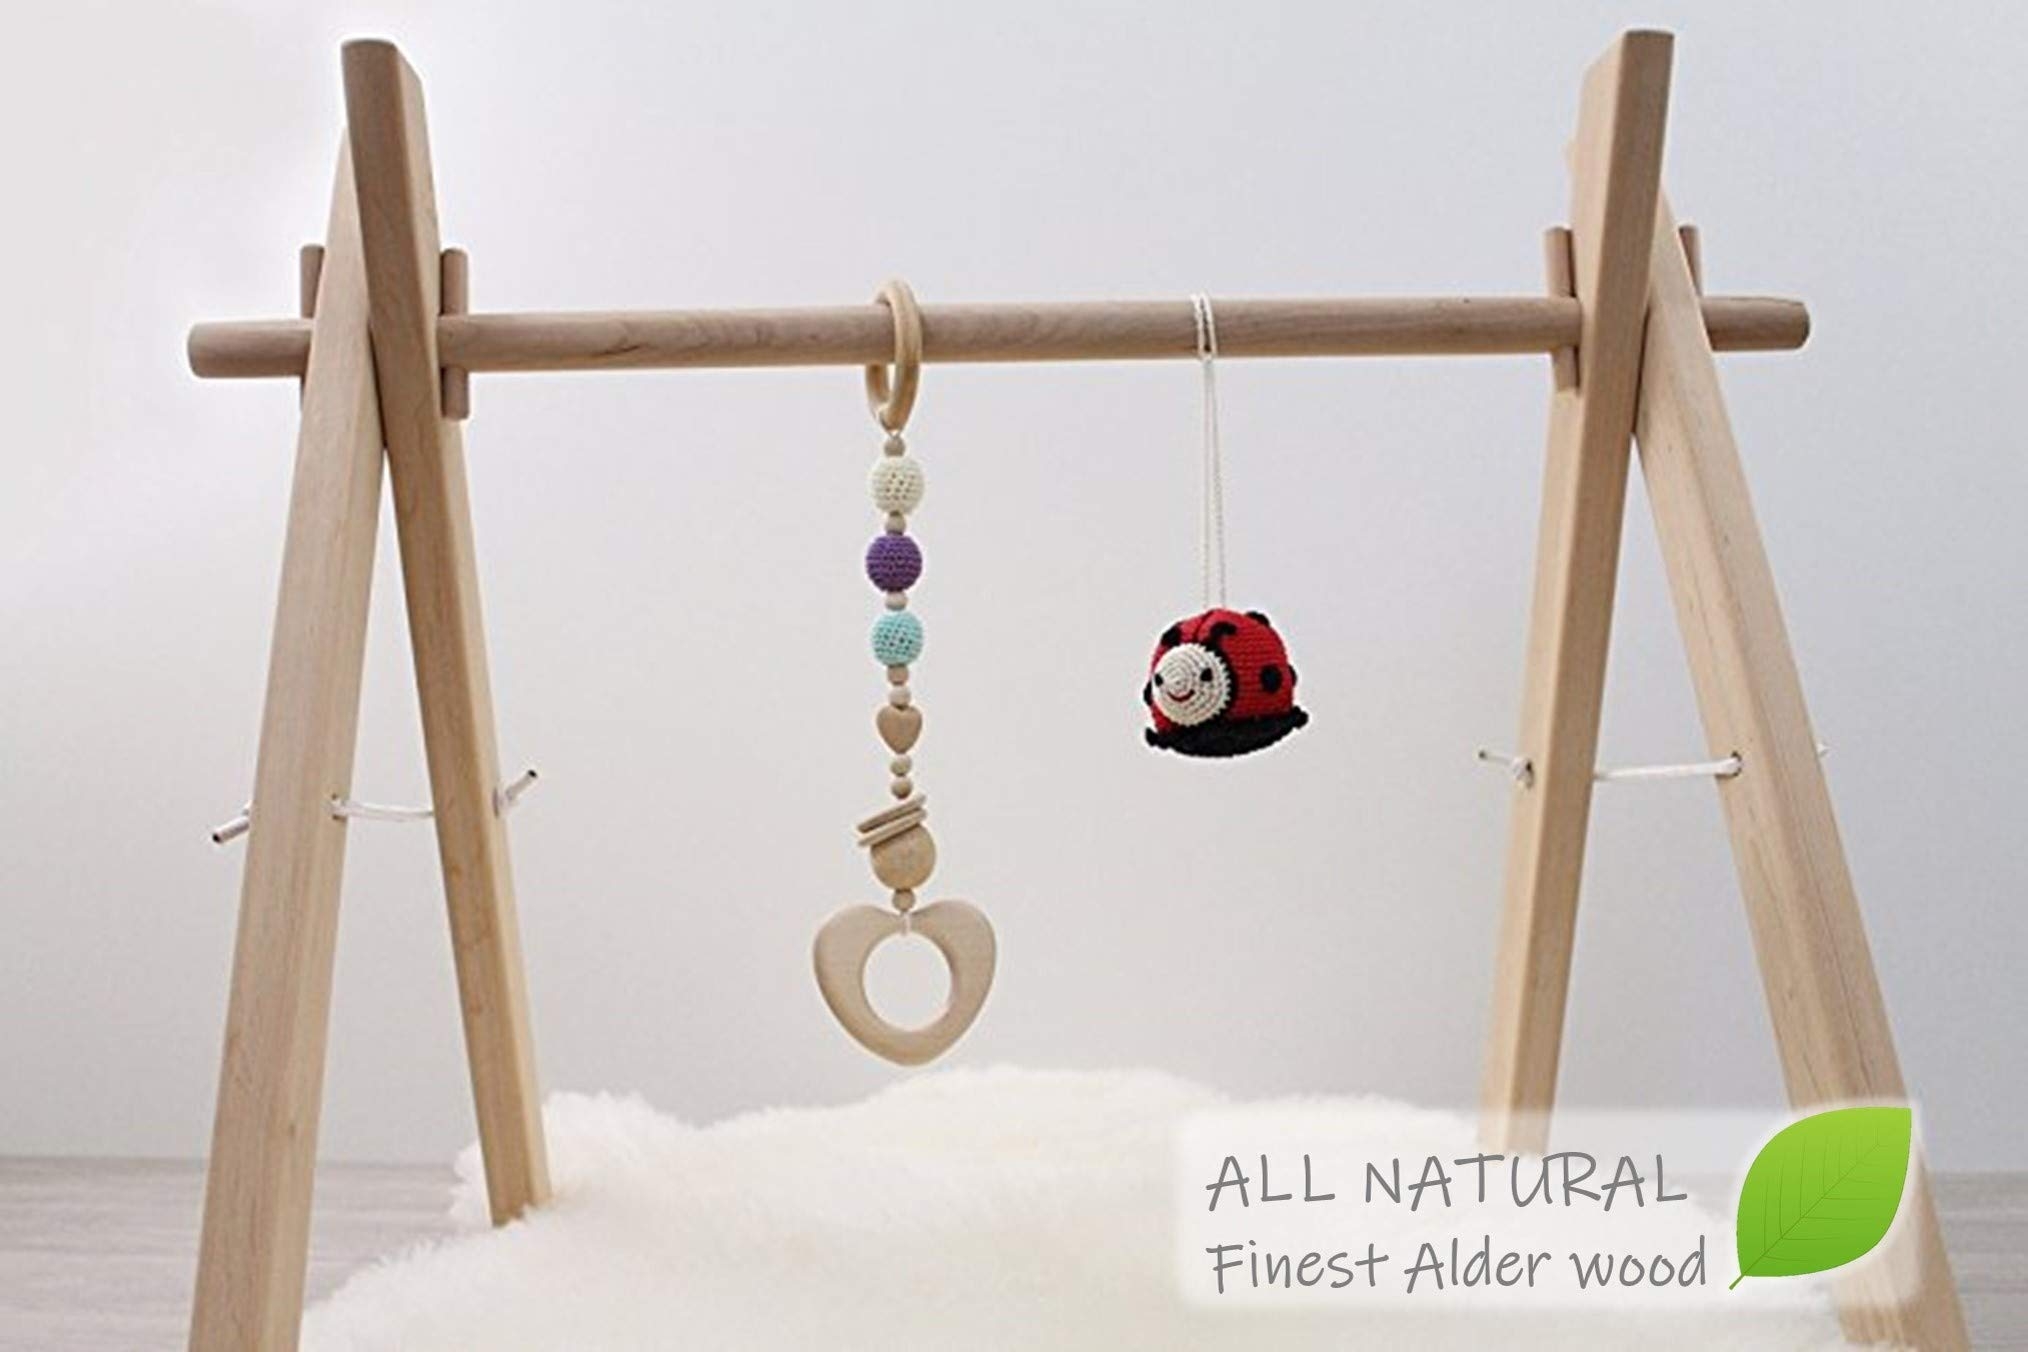 Wooden baby gym frame, foldable play gym, activity gym, hanging bar, baby play gym bar, wood, non toxic, organic